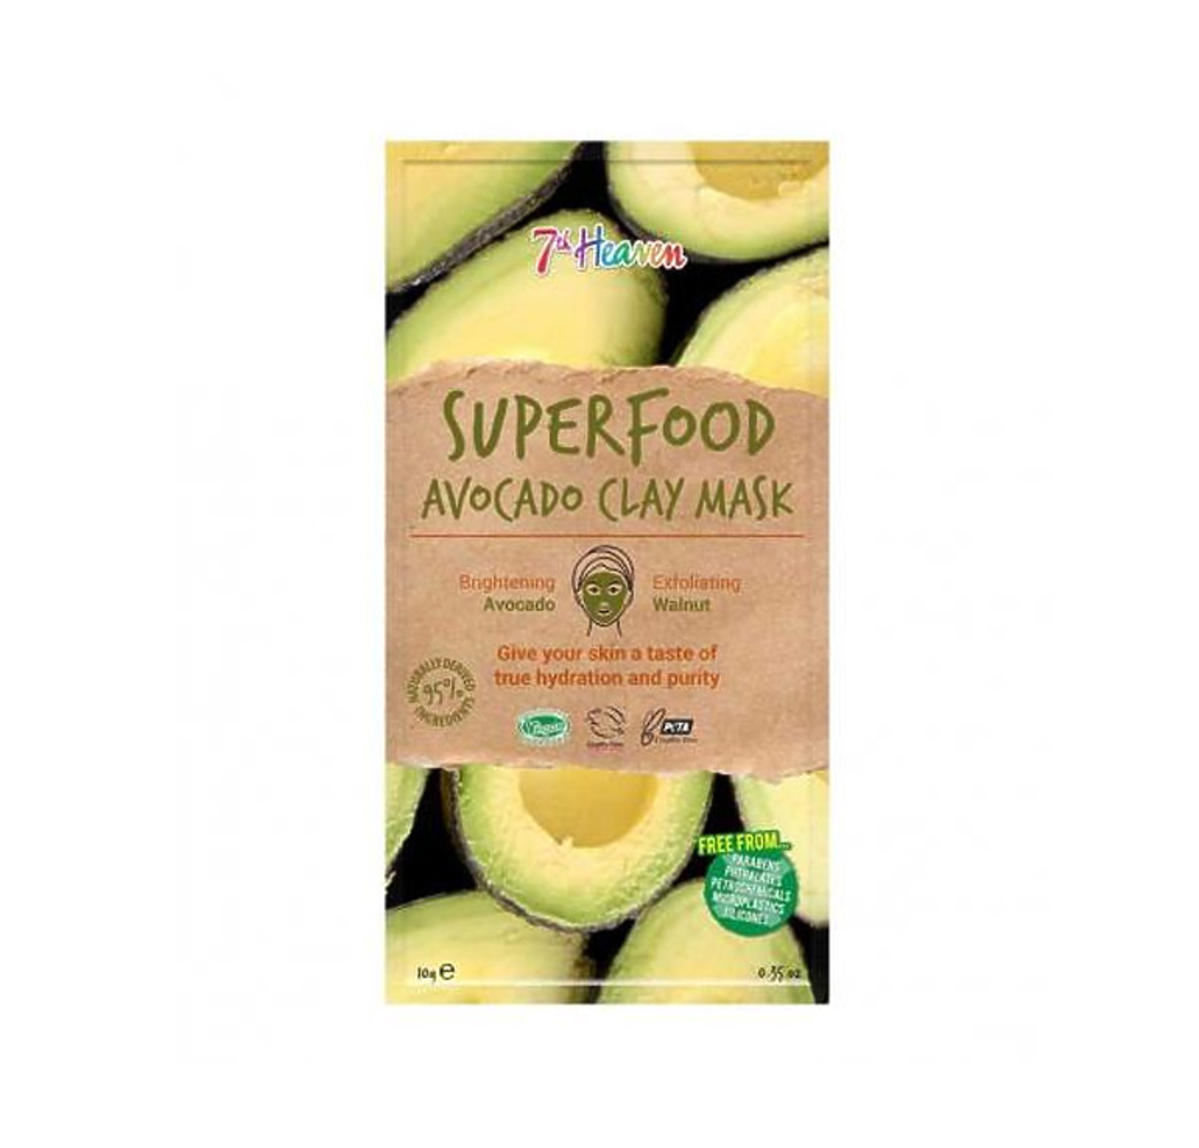 7th Heaven, Superfood Avocado Clay Mask